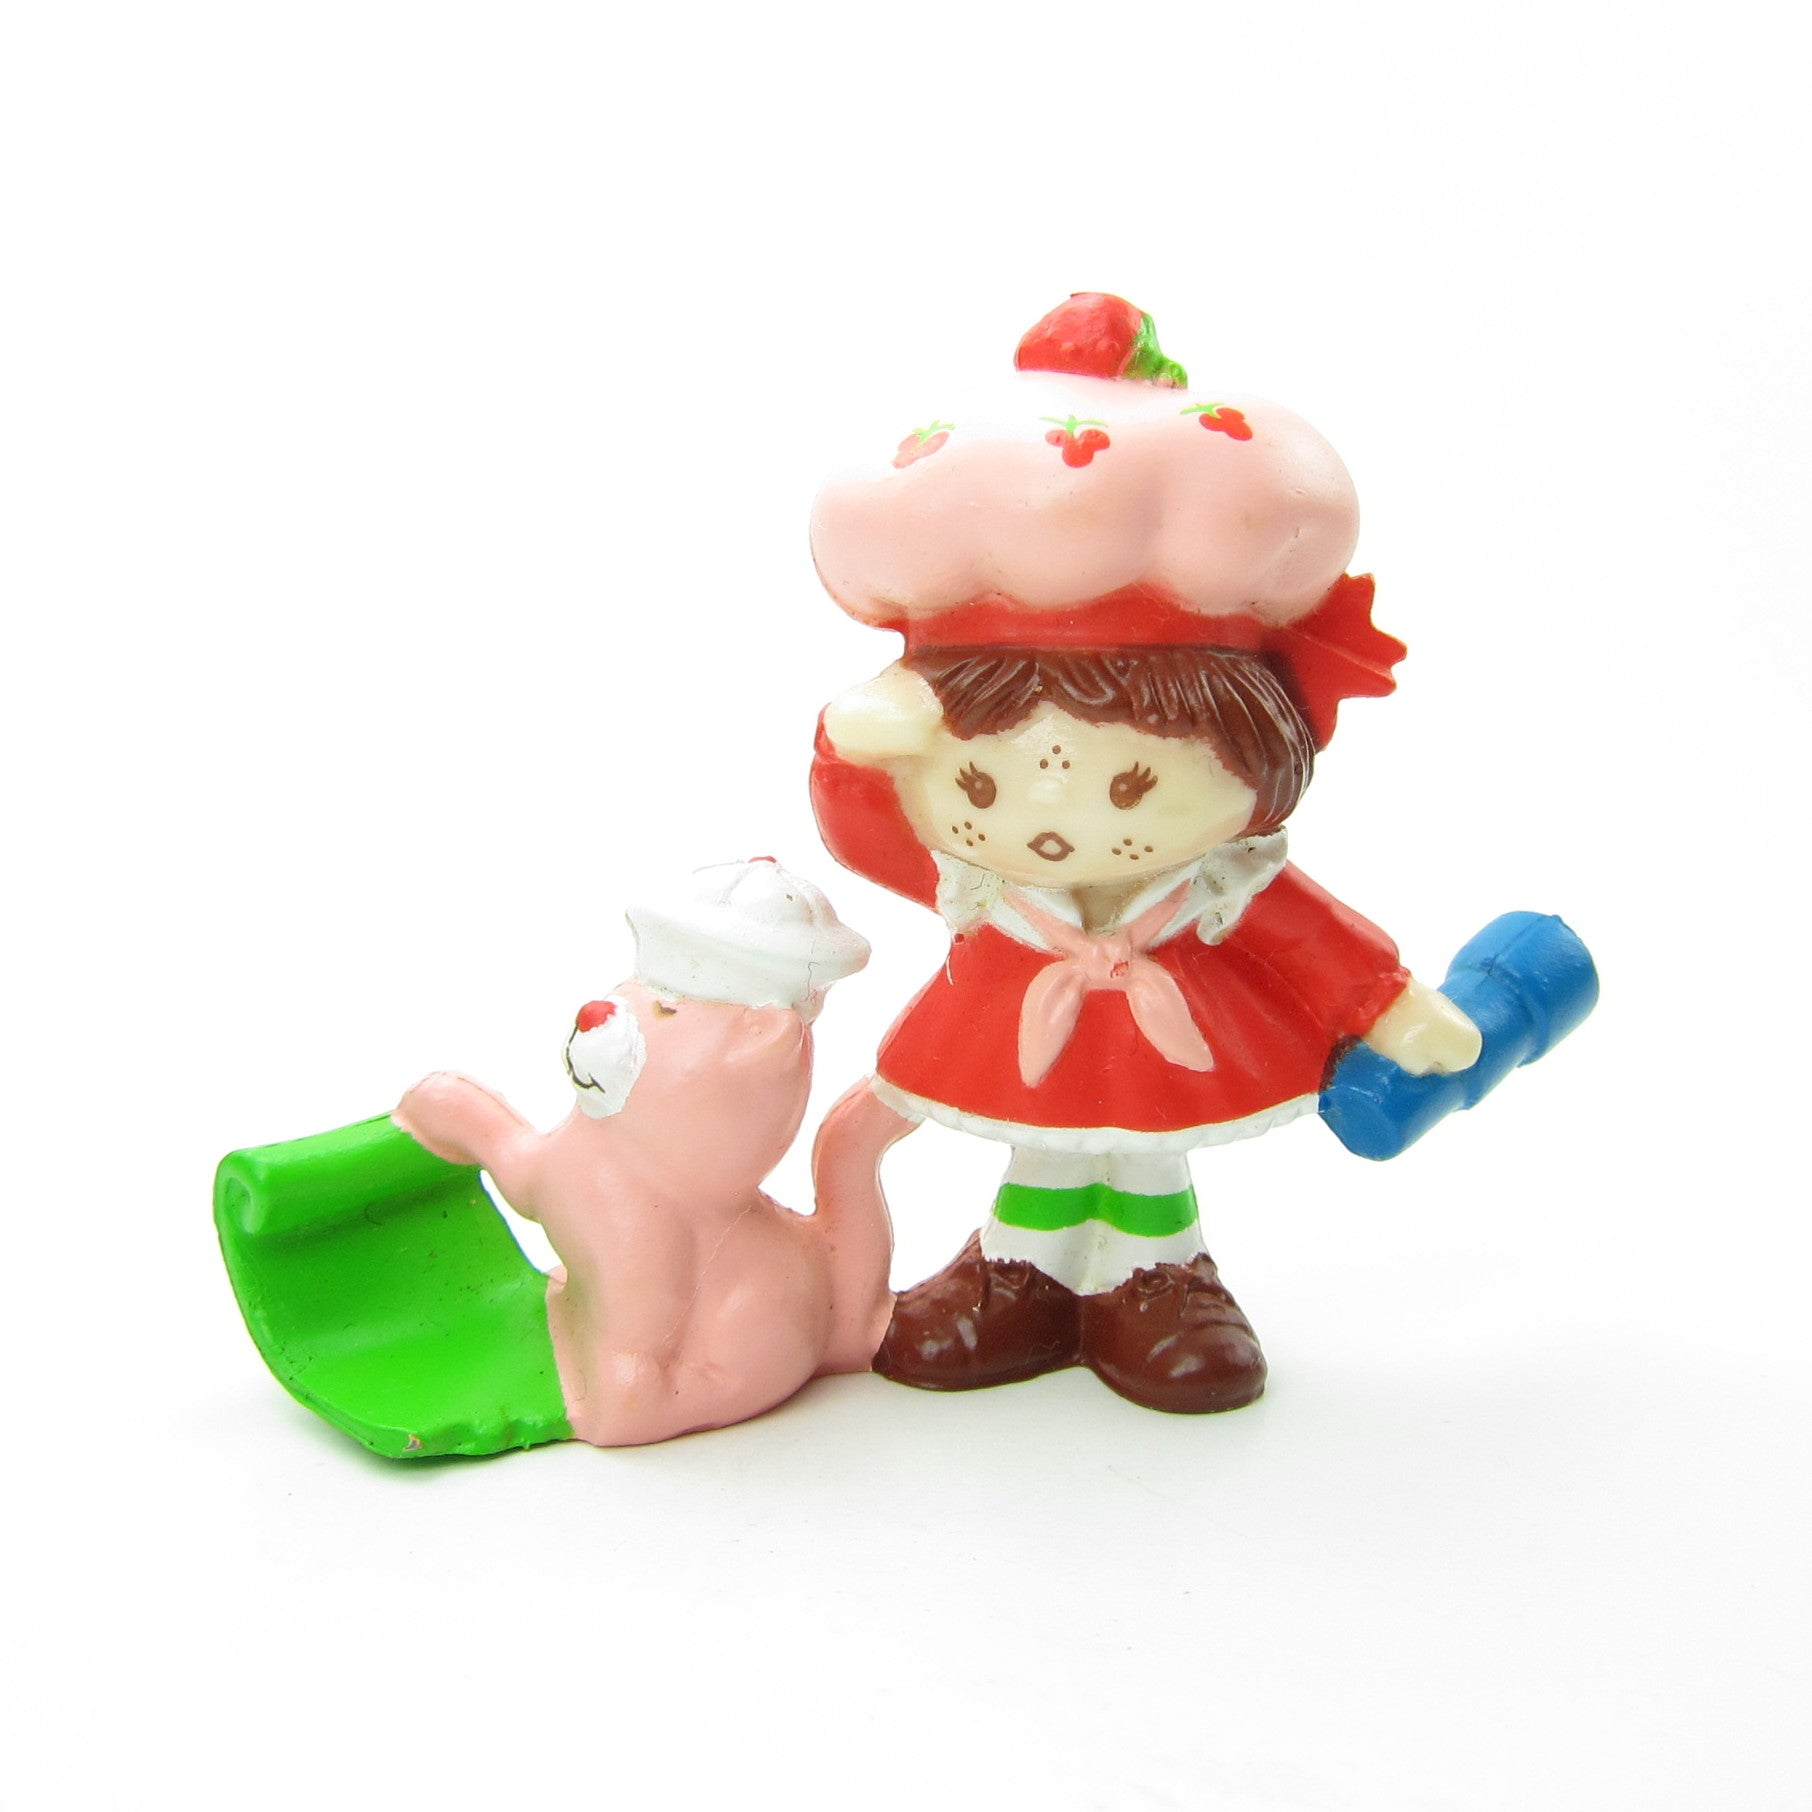 Strawberry Shortcake with Custard on a Sailboat miniature figurine